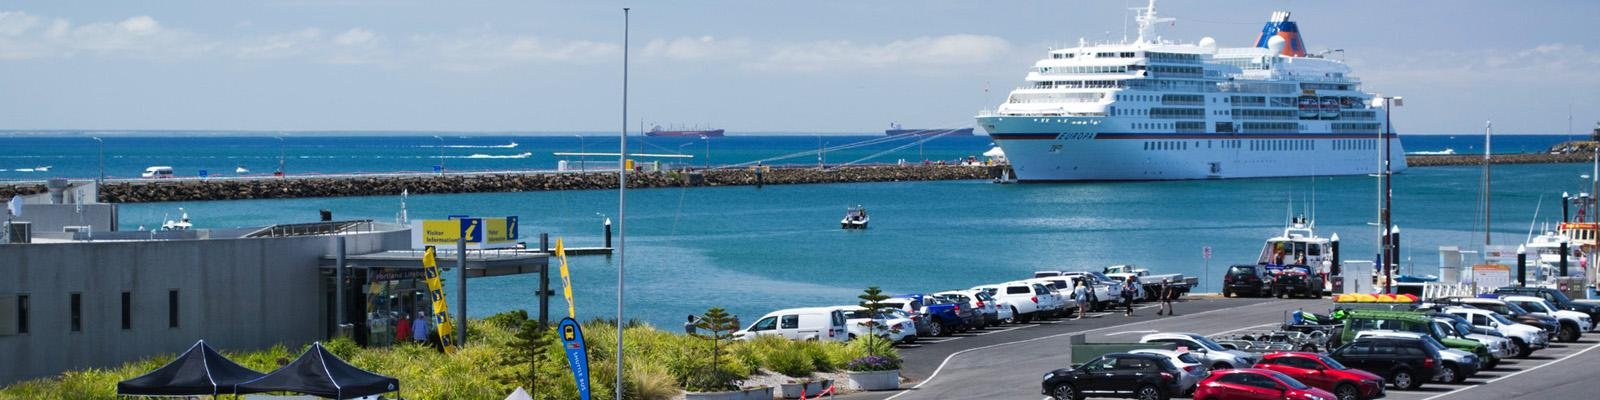 Great-South-Coast-DAMA-GSC-Victoria-Designated-Area-Migration-Agreement-Australia-immigration-rospersonal-Mikhaylov-Evgeny-Matveevich-Immigration-Agent-Moscow 2.jpg